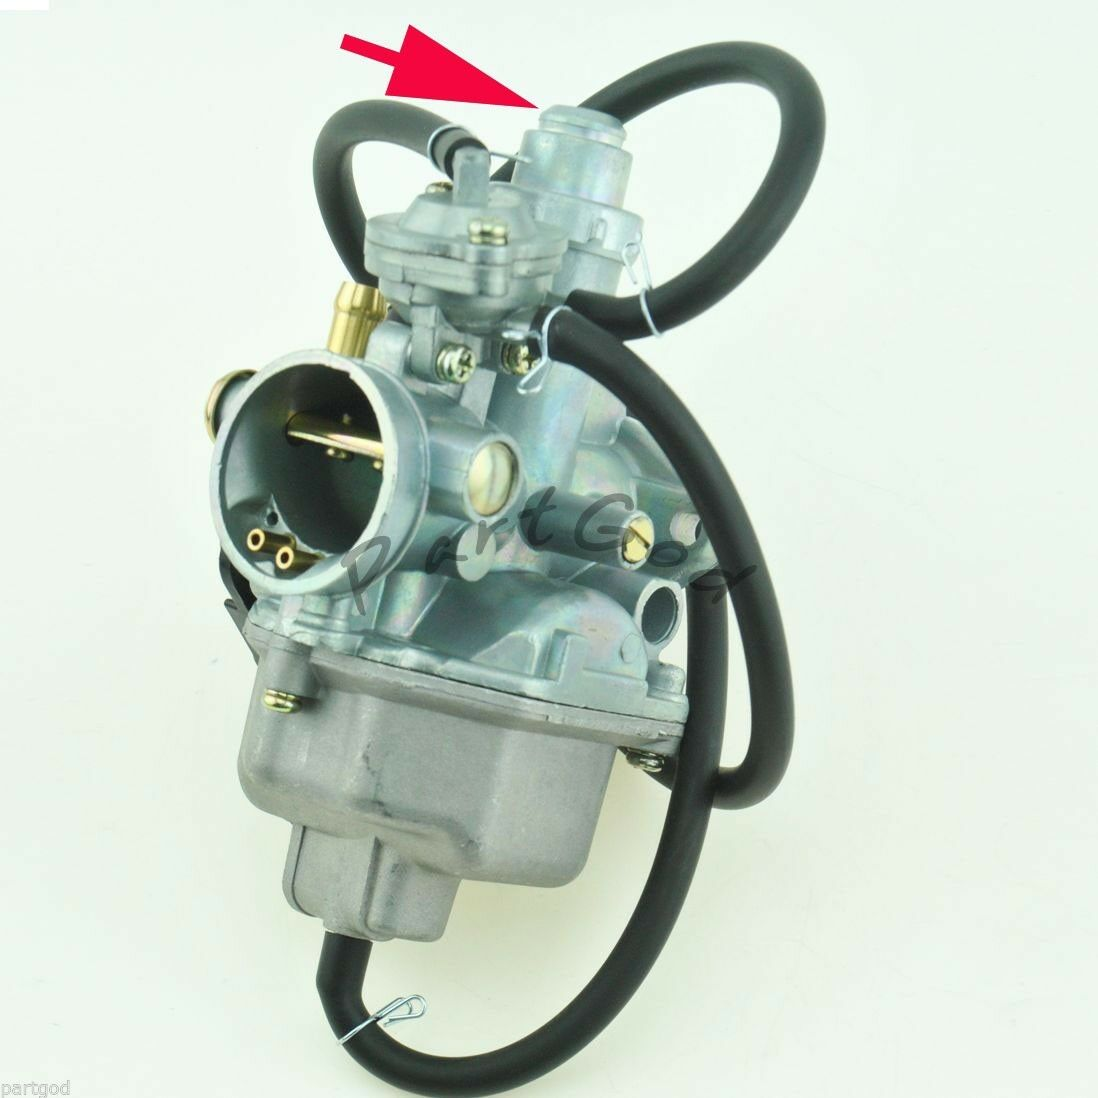 Honda Recon 250 >> HONDA TRX 250 TM CARBURETOR FOURTRAX RECON TRX250 2002-2007 CARB